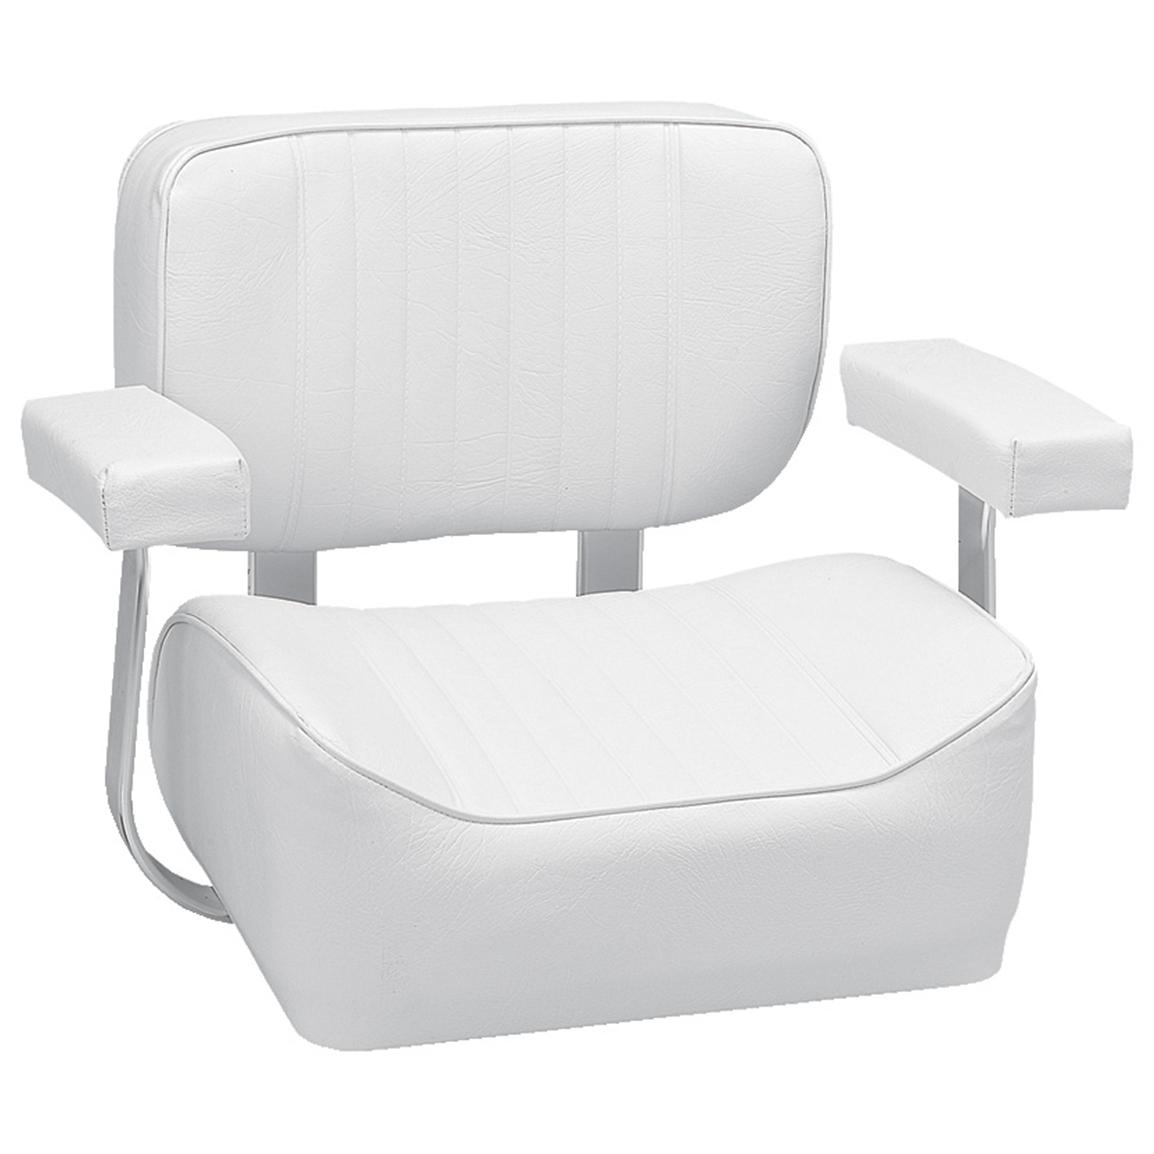 Helm Chairs Wise Offshore Deluxe Helm Chair With Arm Rests White